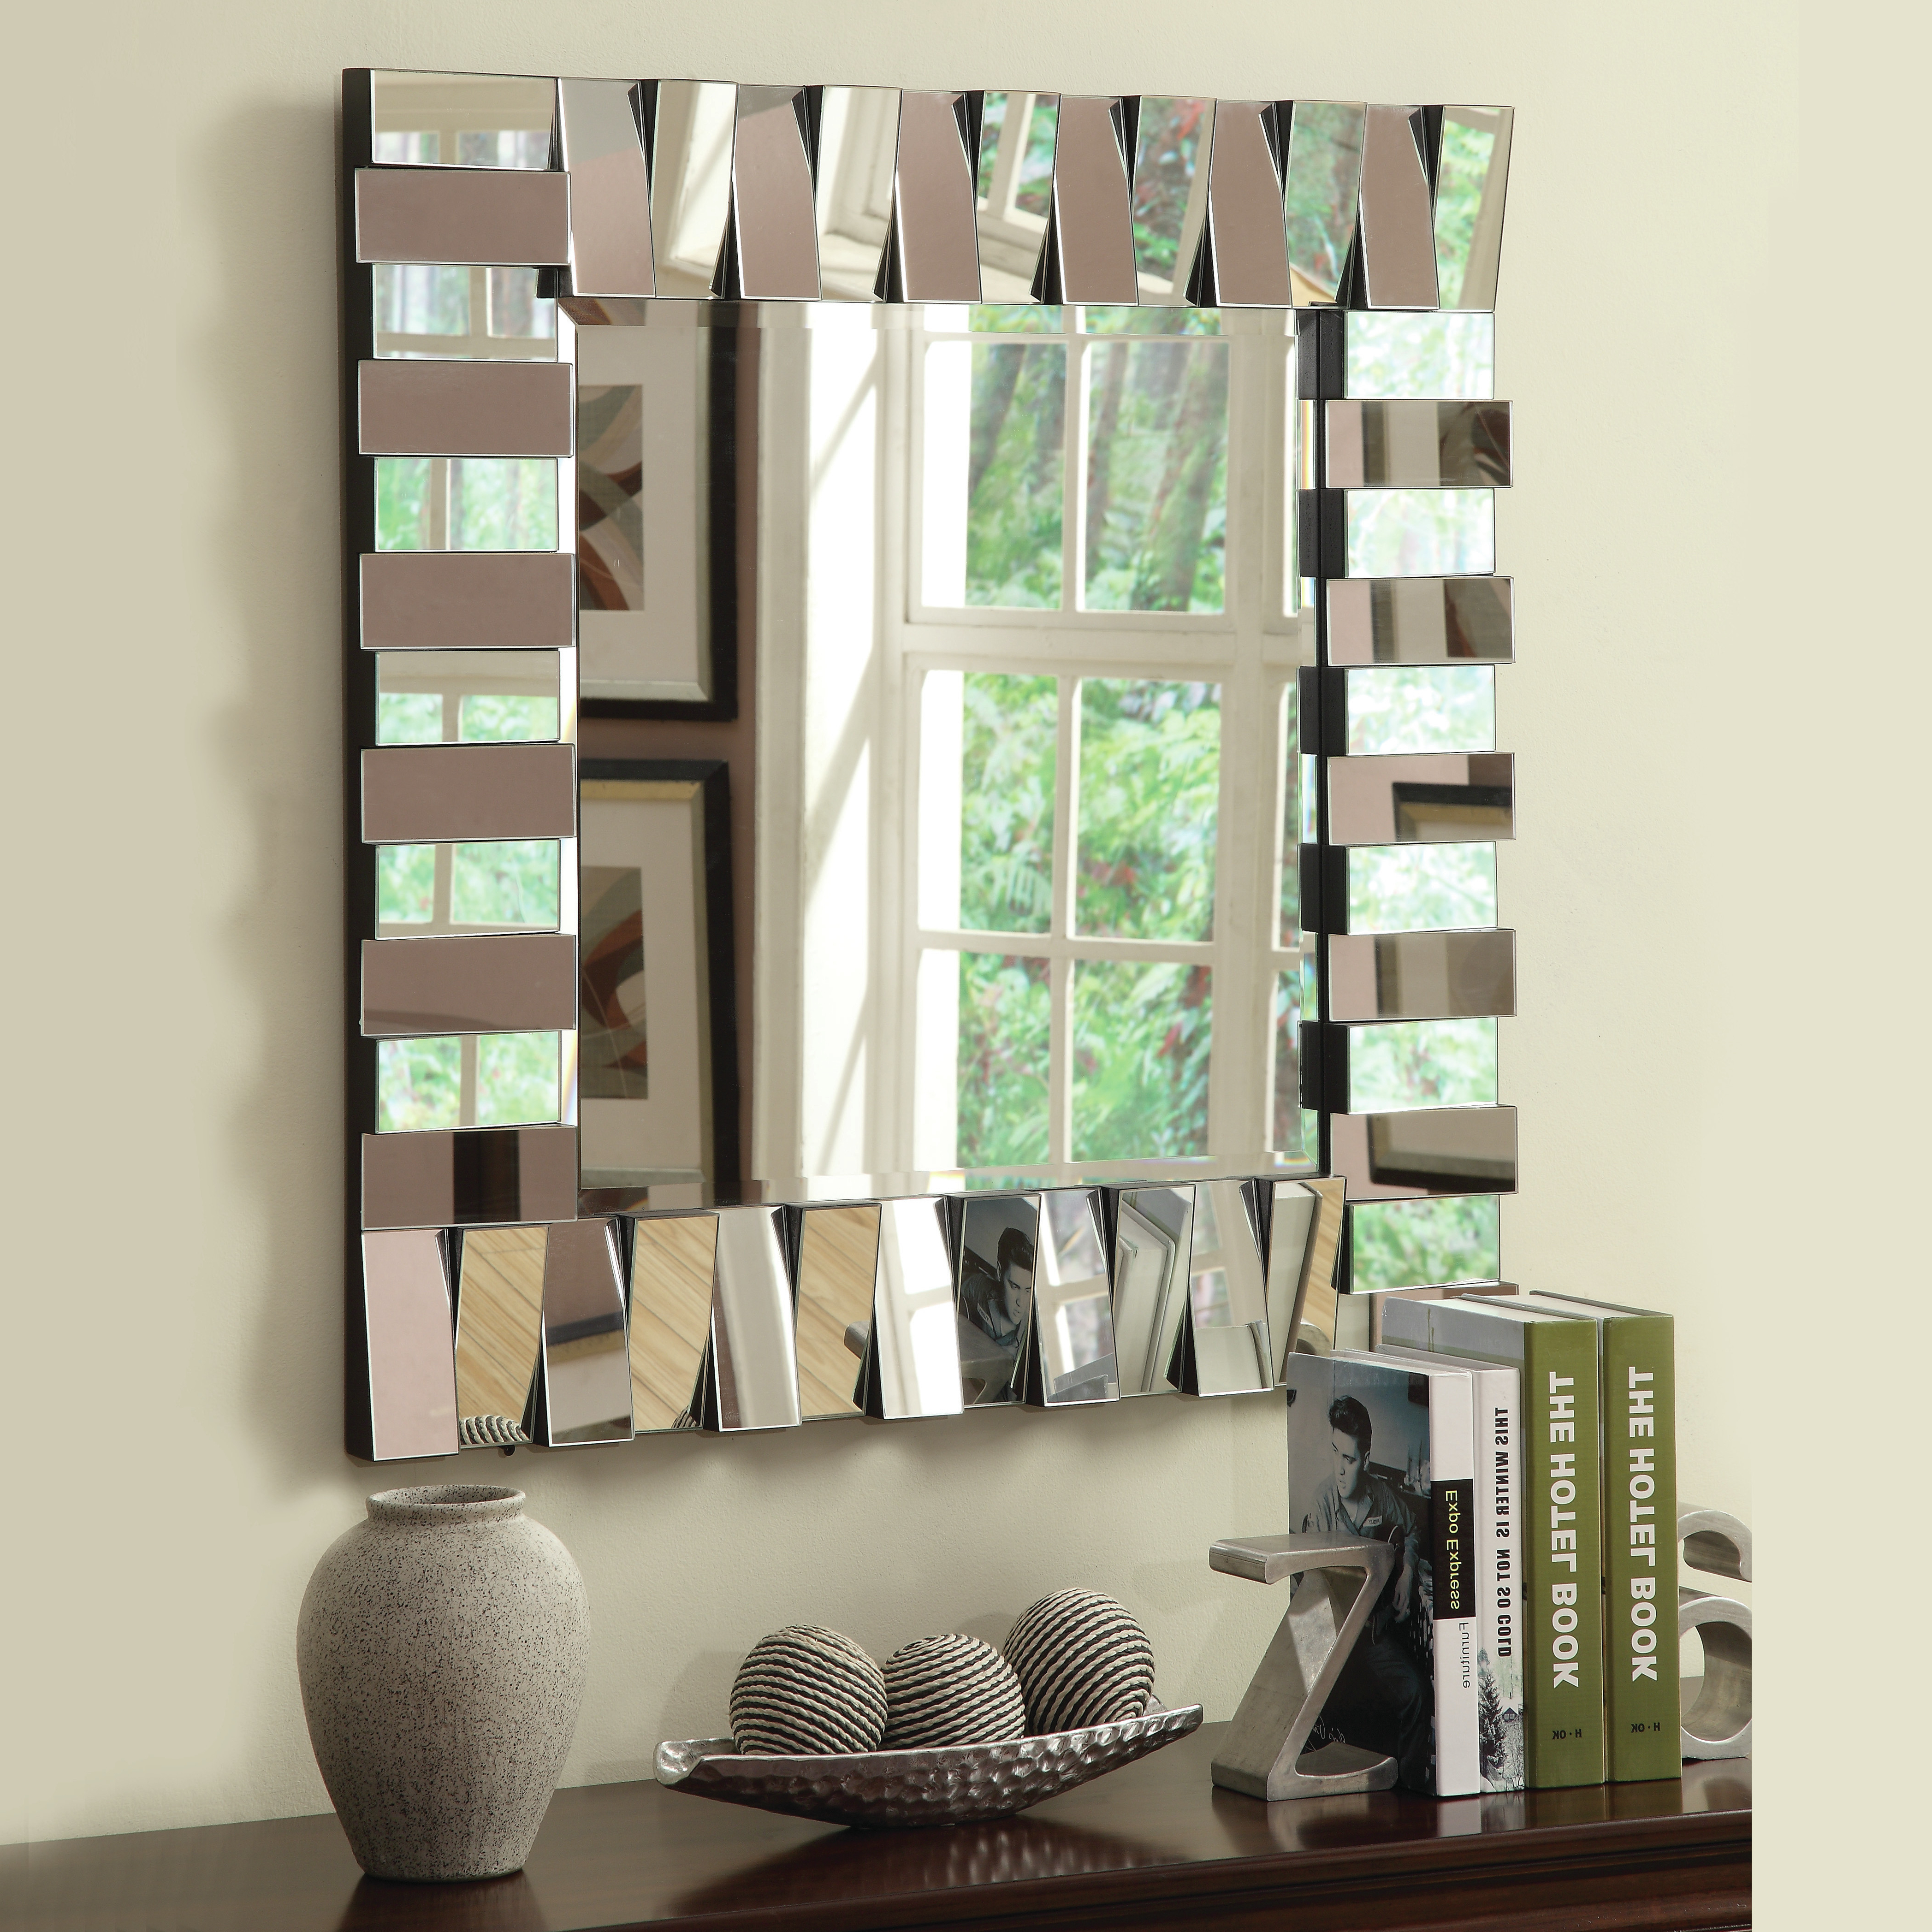 Widely Used Really Amazing Mirrored Wall Interiors Ideas That Everyone Regarding Unique Wall Mirrors (View 12 of 20)